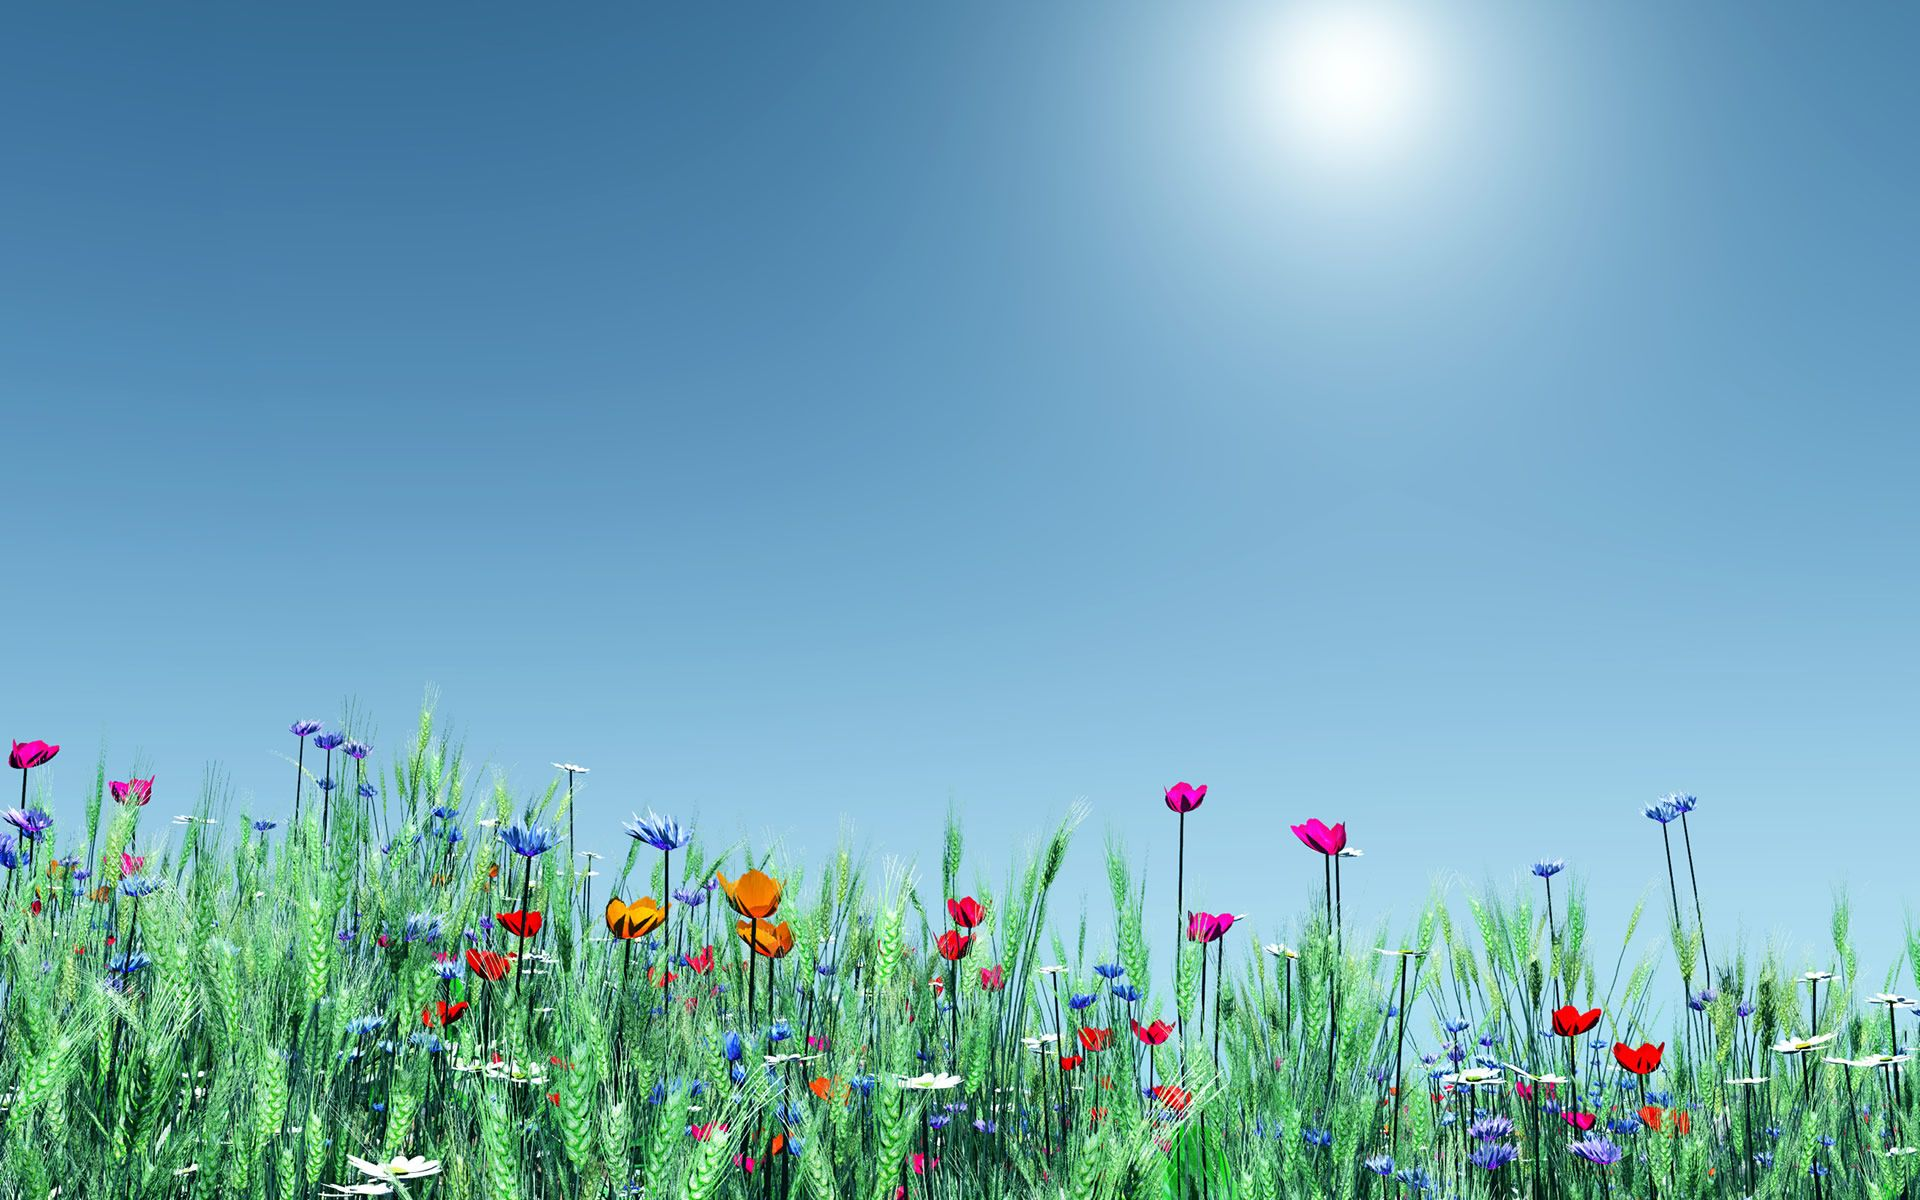 Spring flowers wallpapers widescreen natures wallpapers spring flowers wallpapers widescreen mightylinksfo